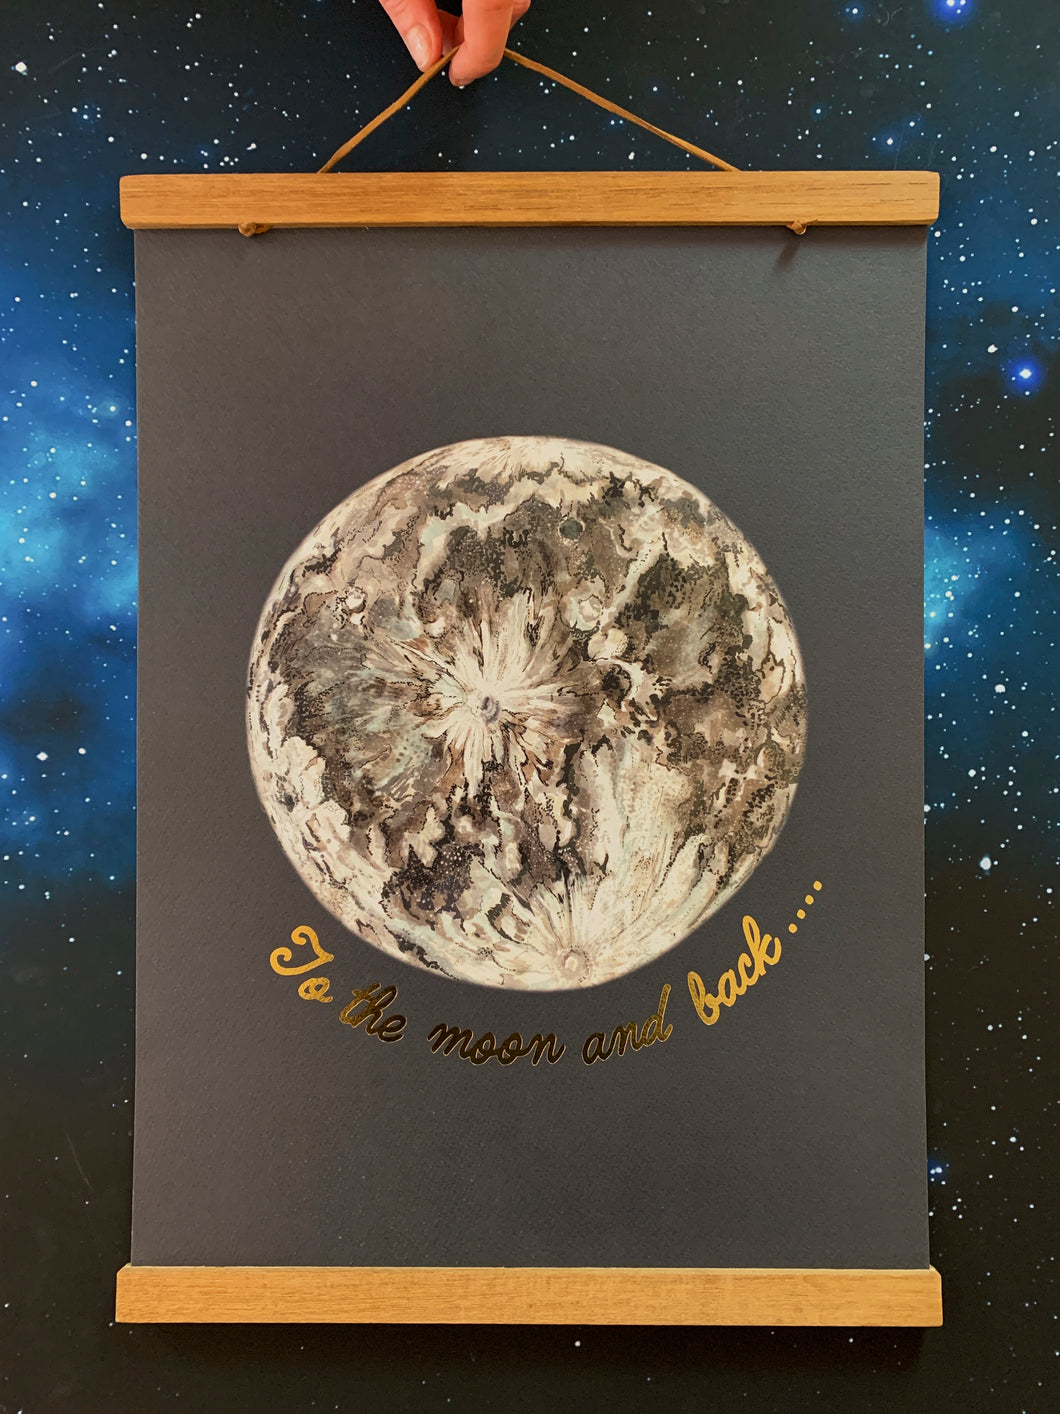 Limited Edition To The Moon And Back Gold Foiled A3 Print